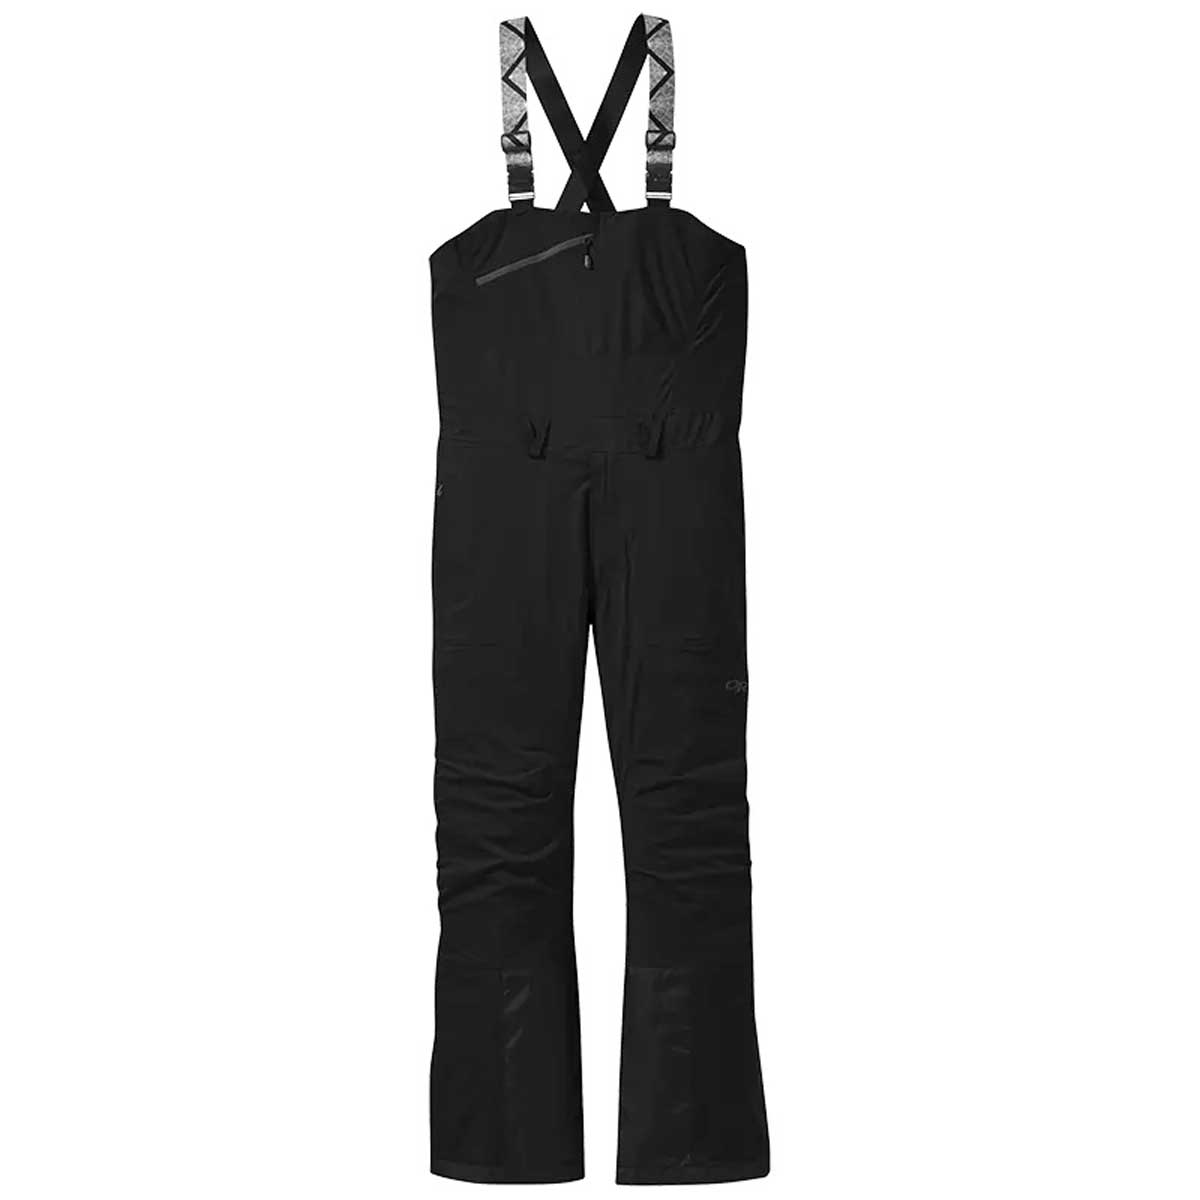 Outdoor Research Men's Carbide Bibs in Black